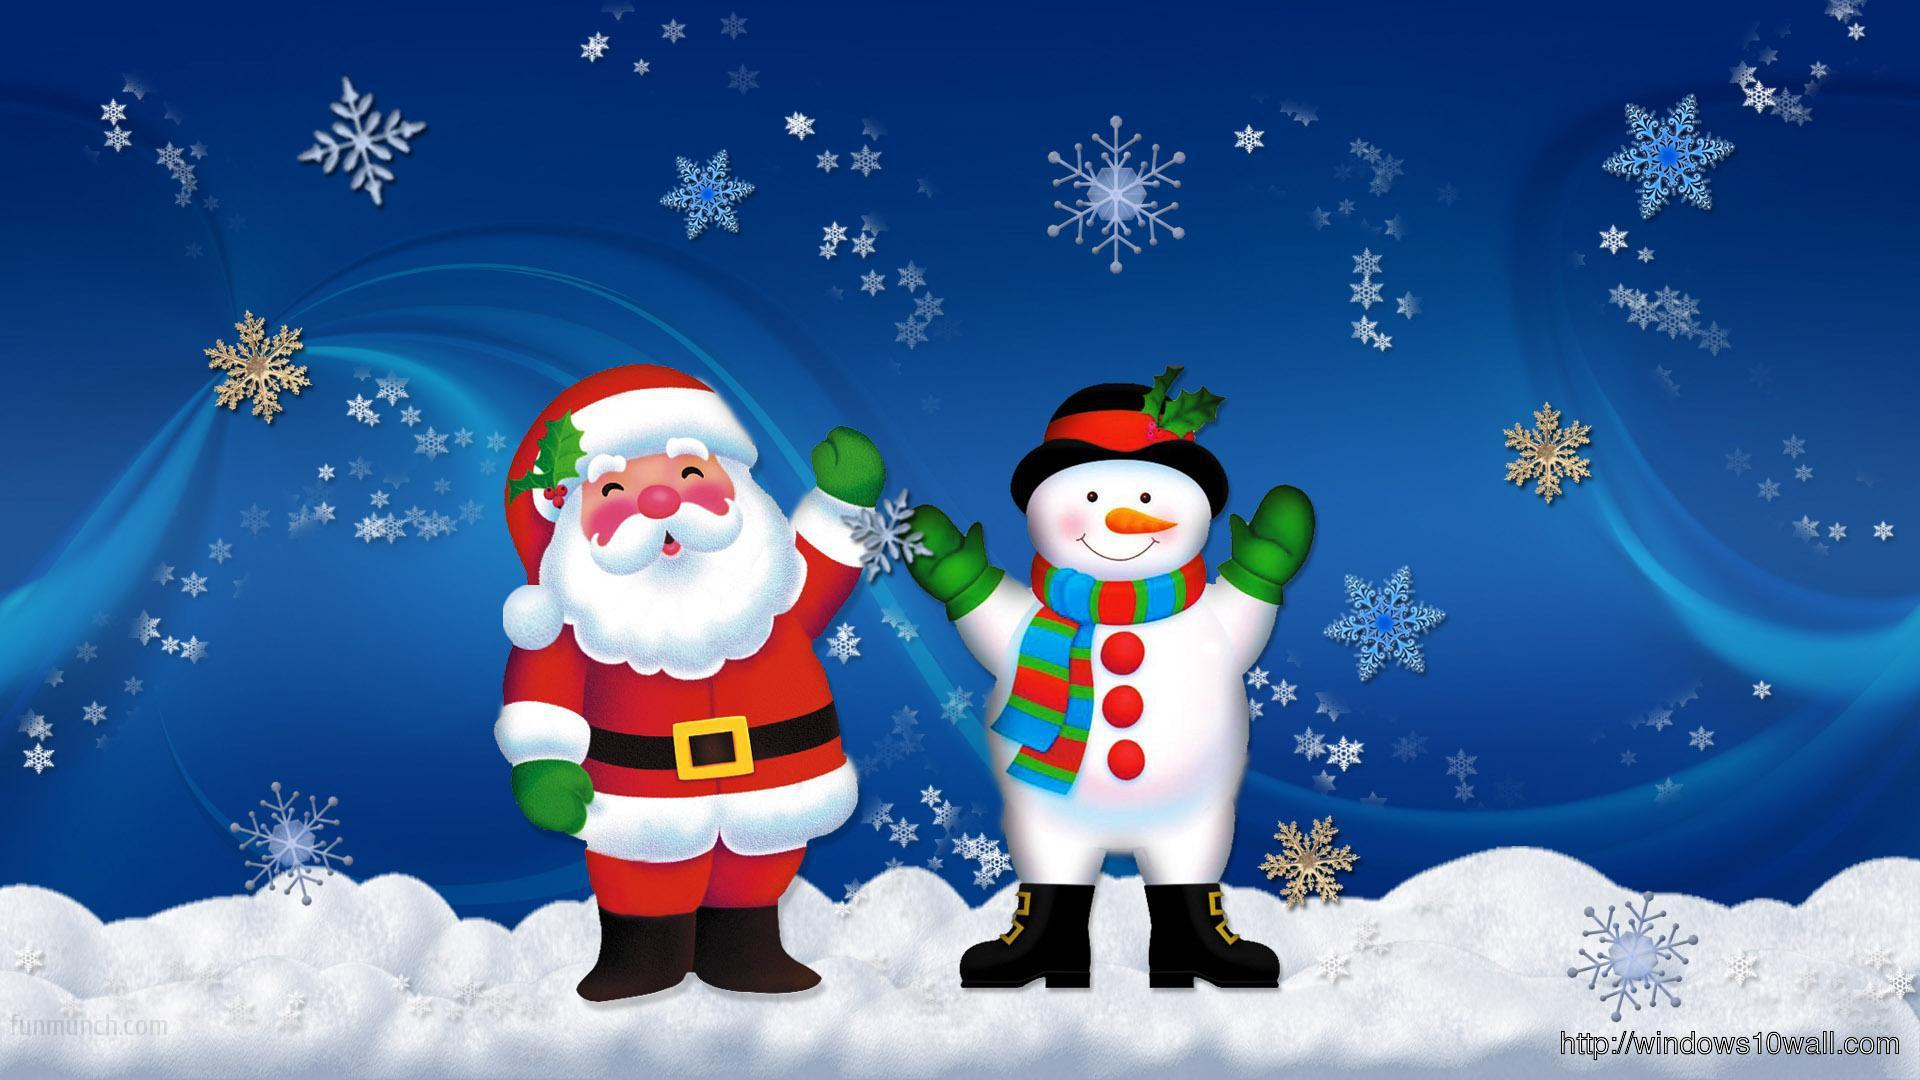 Christmas Background Wallpaper with Santa